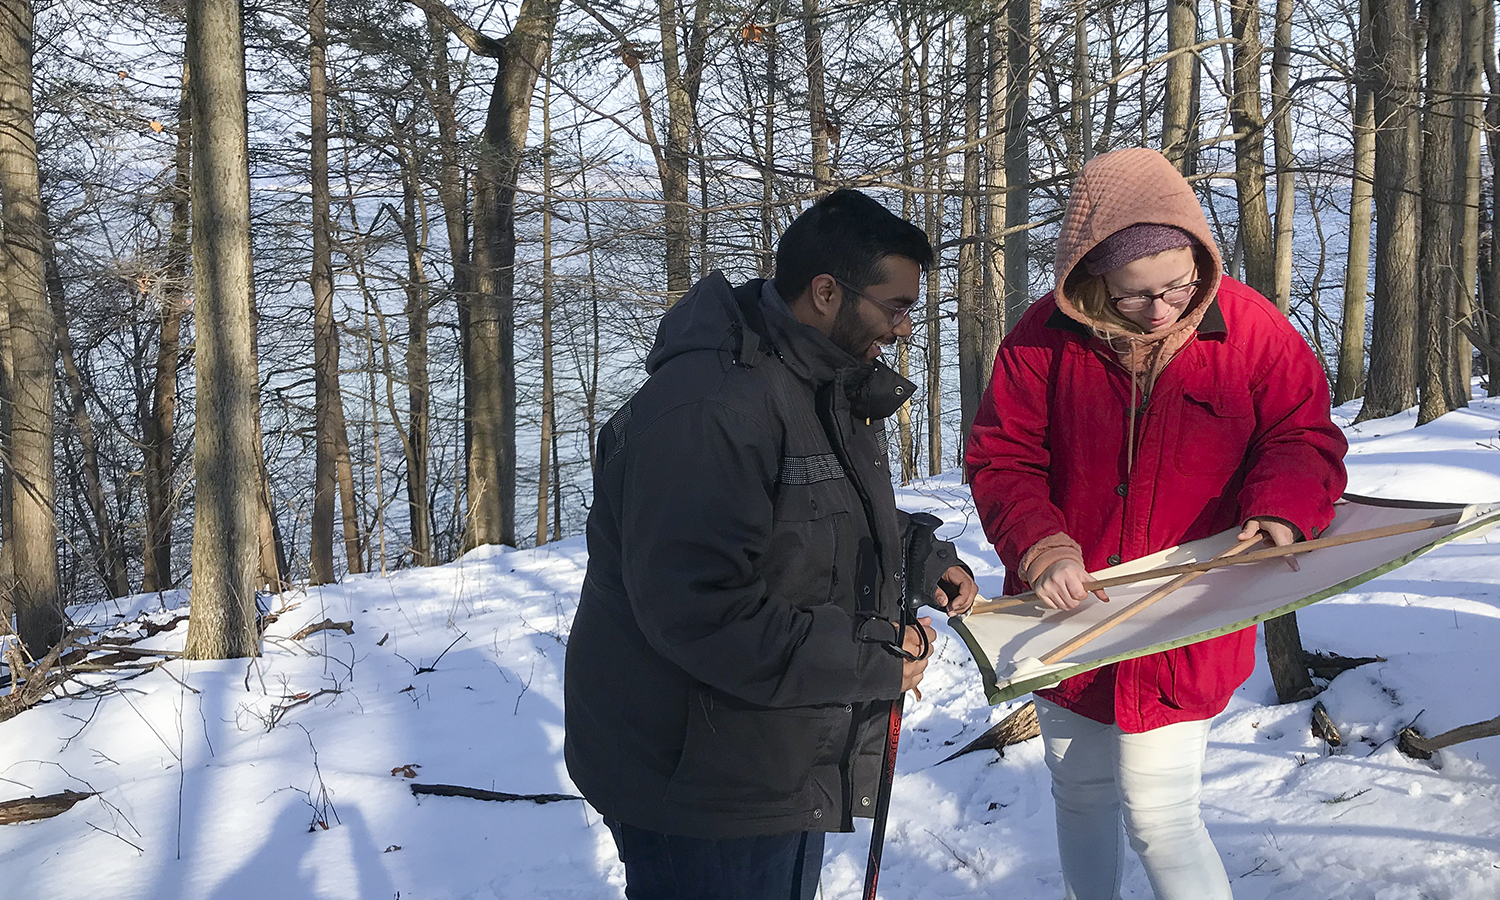 Under the direction of Associate Professor of Biology Meghan Brown, Alvin Randall '19 and Mikayla Meyer '20 look for biocontrol beetles in Hemlock trees at the VanRiper Preserve of the Finger Lakes Land Trust.